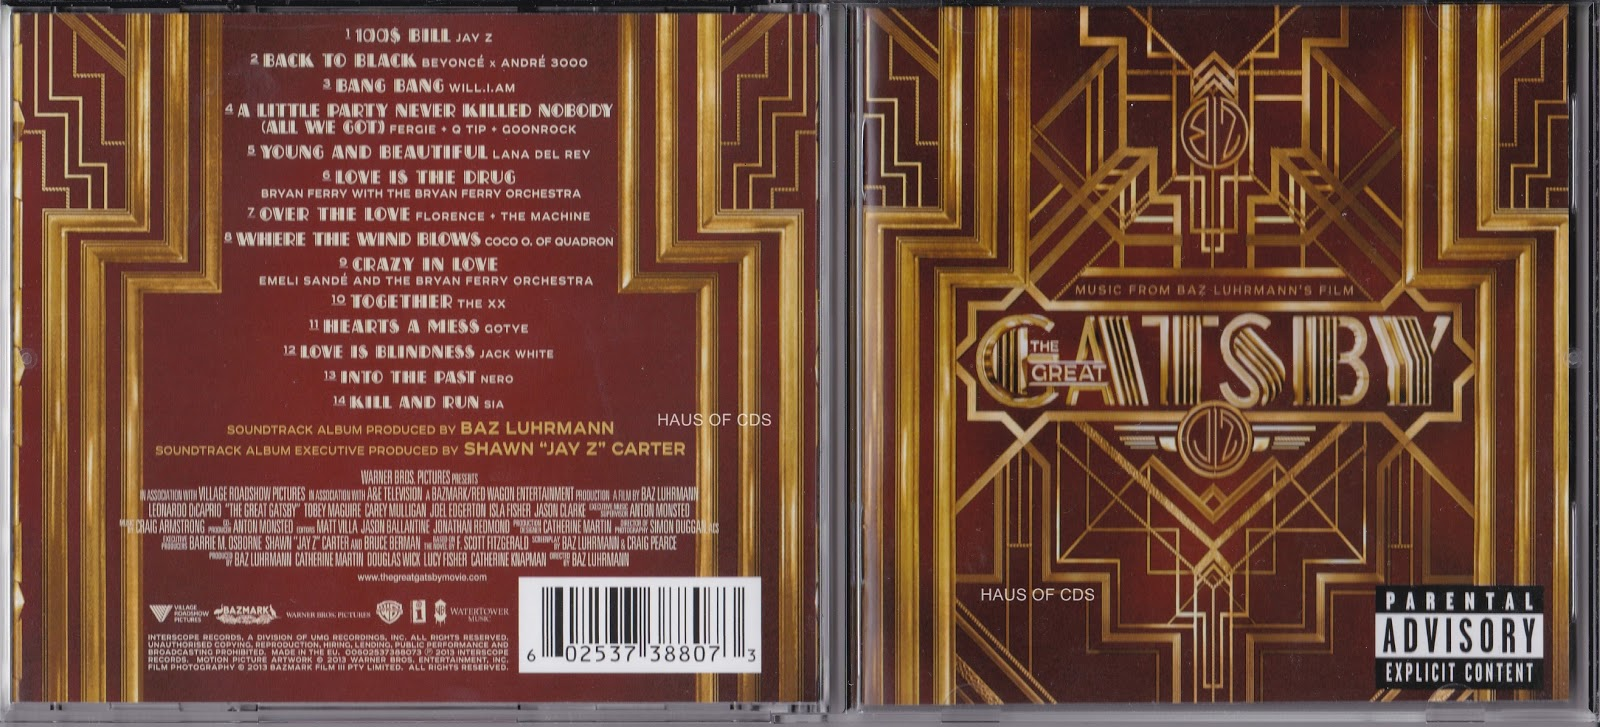 great gatsby soundtrack mp3 rar